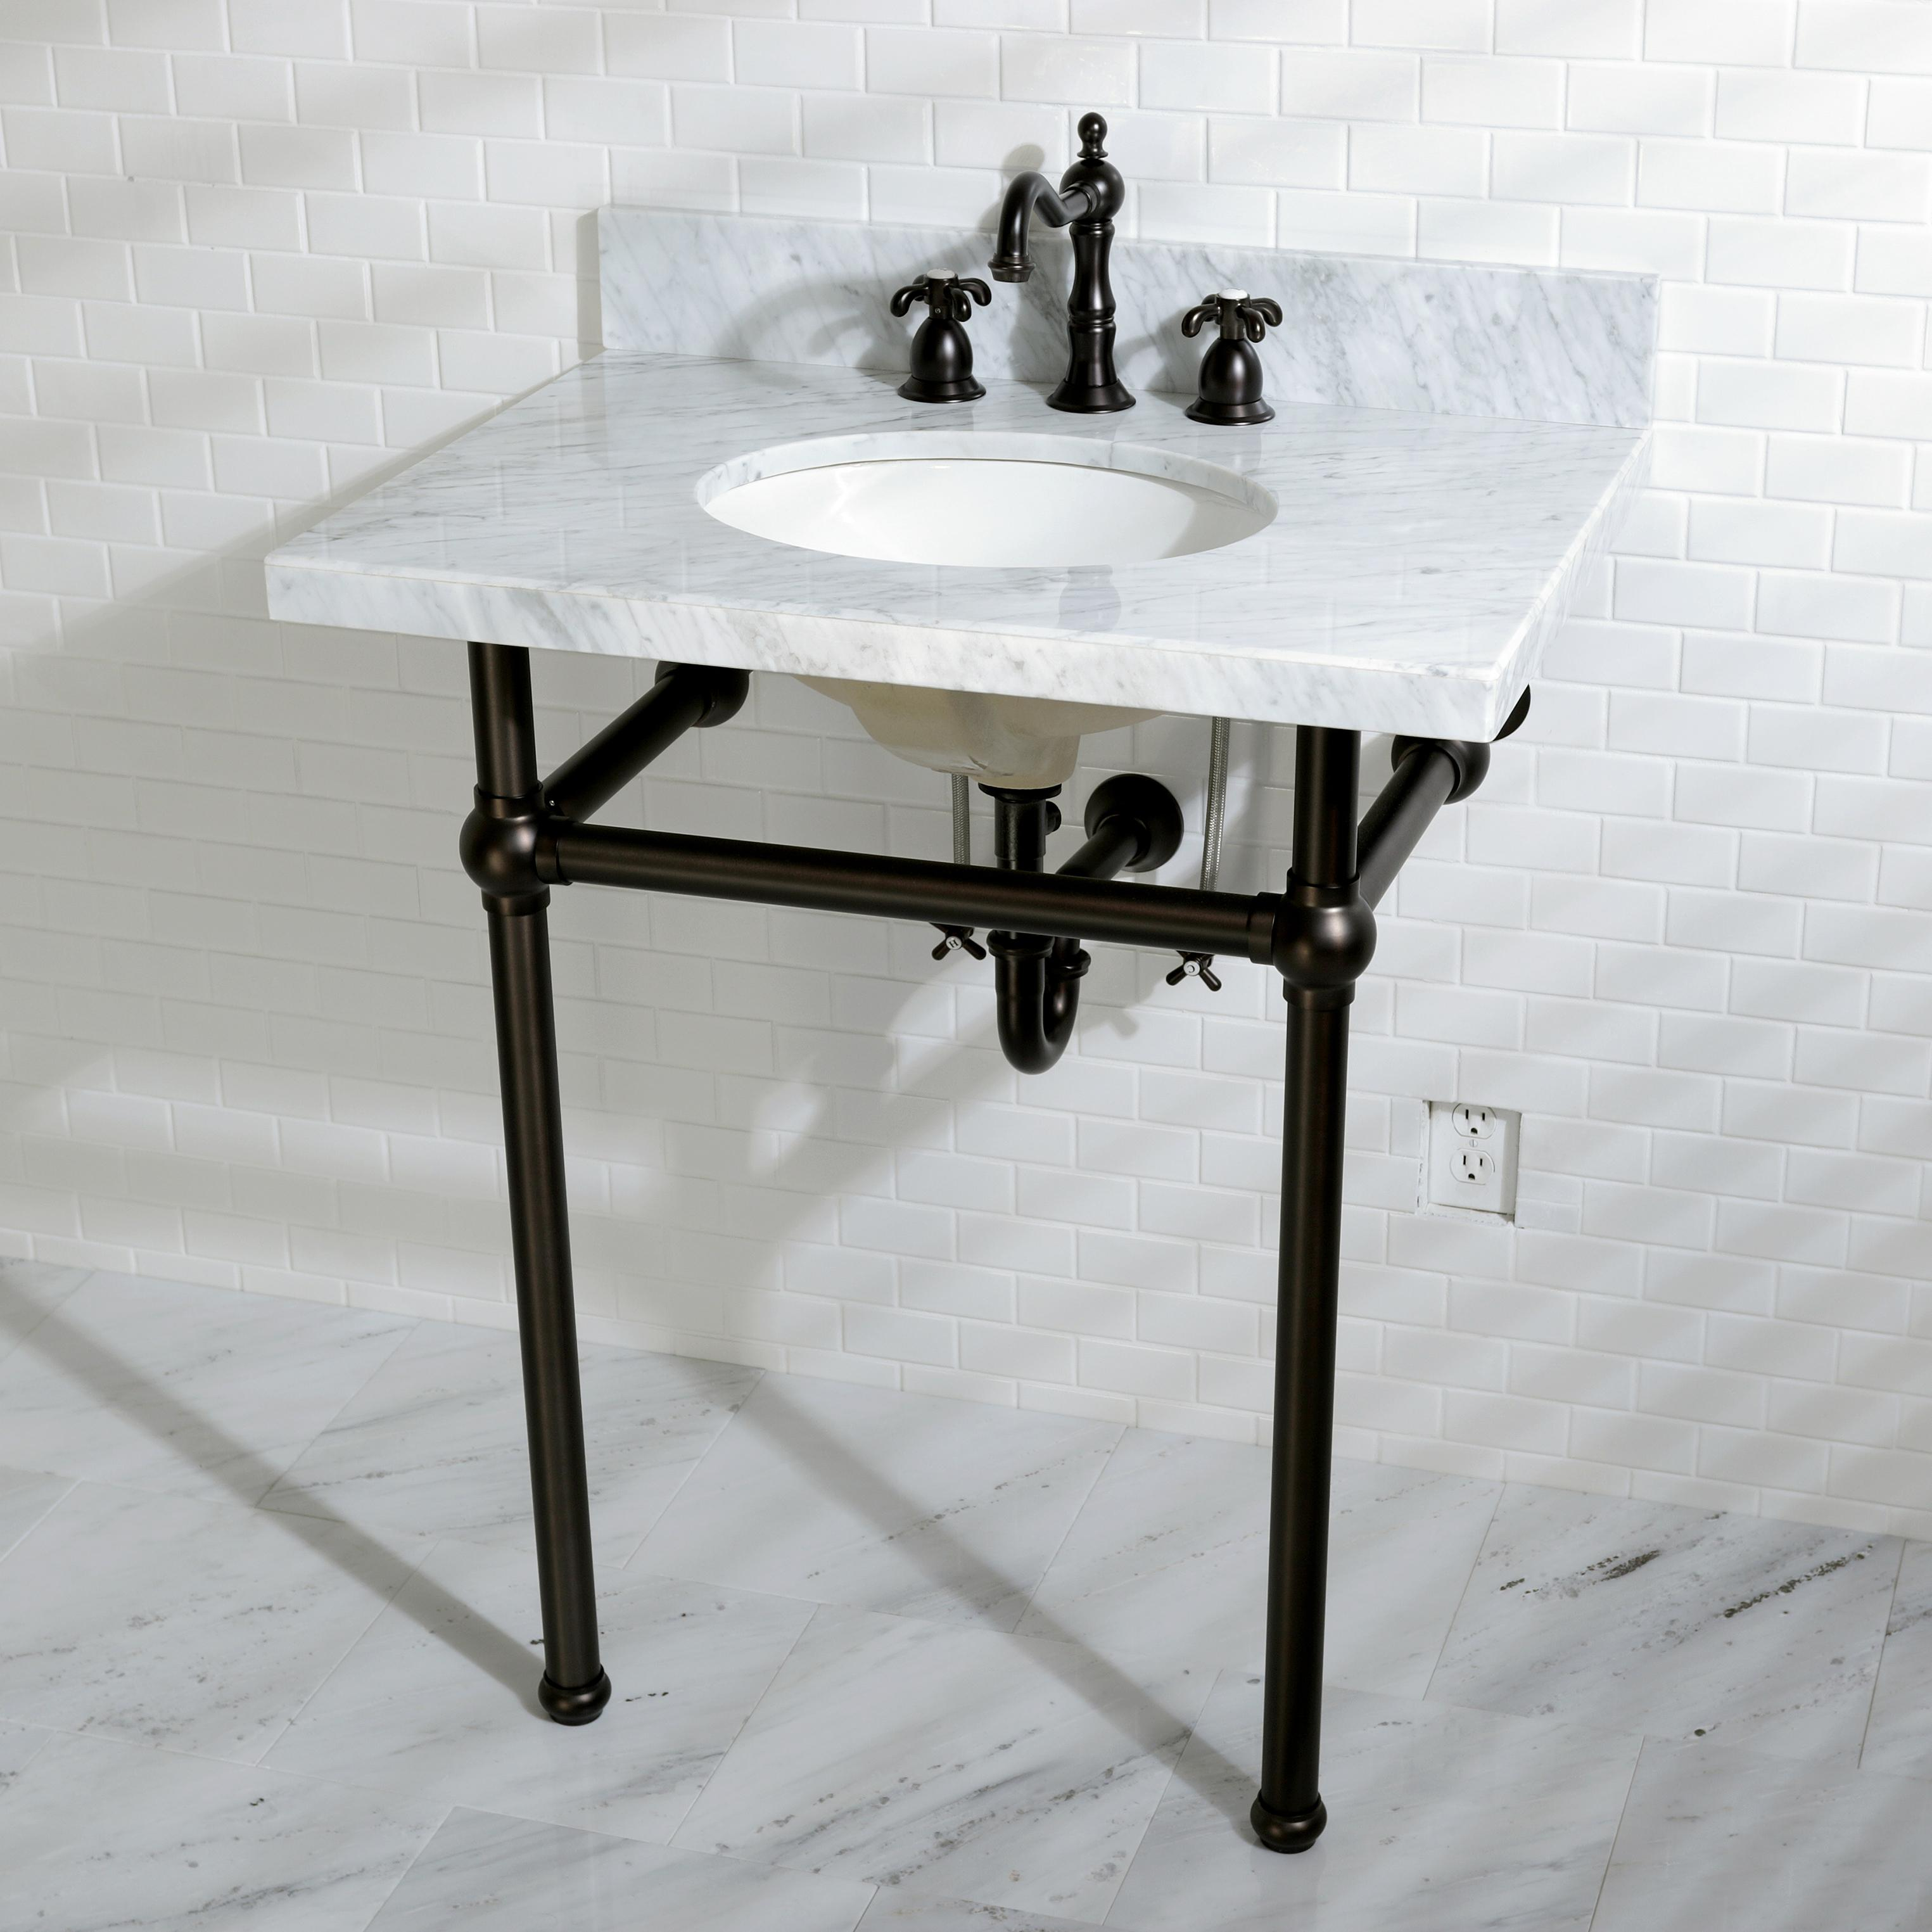 Console sink with chrome legs - View Larger